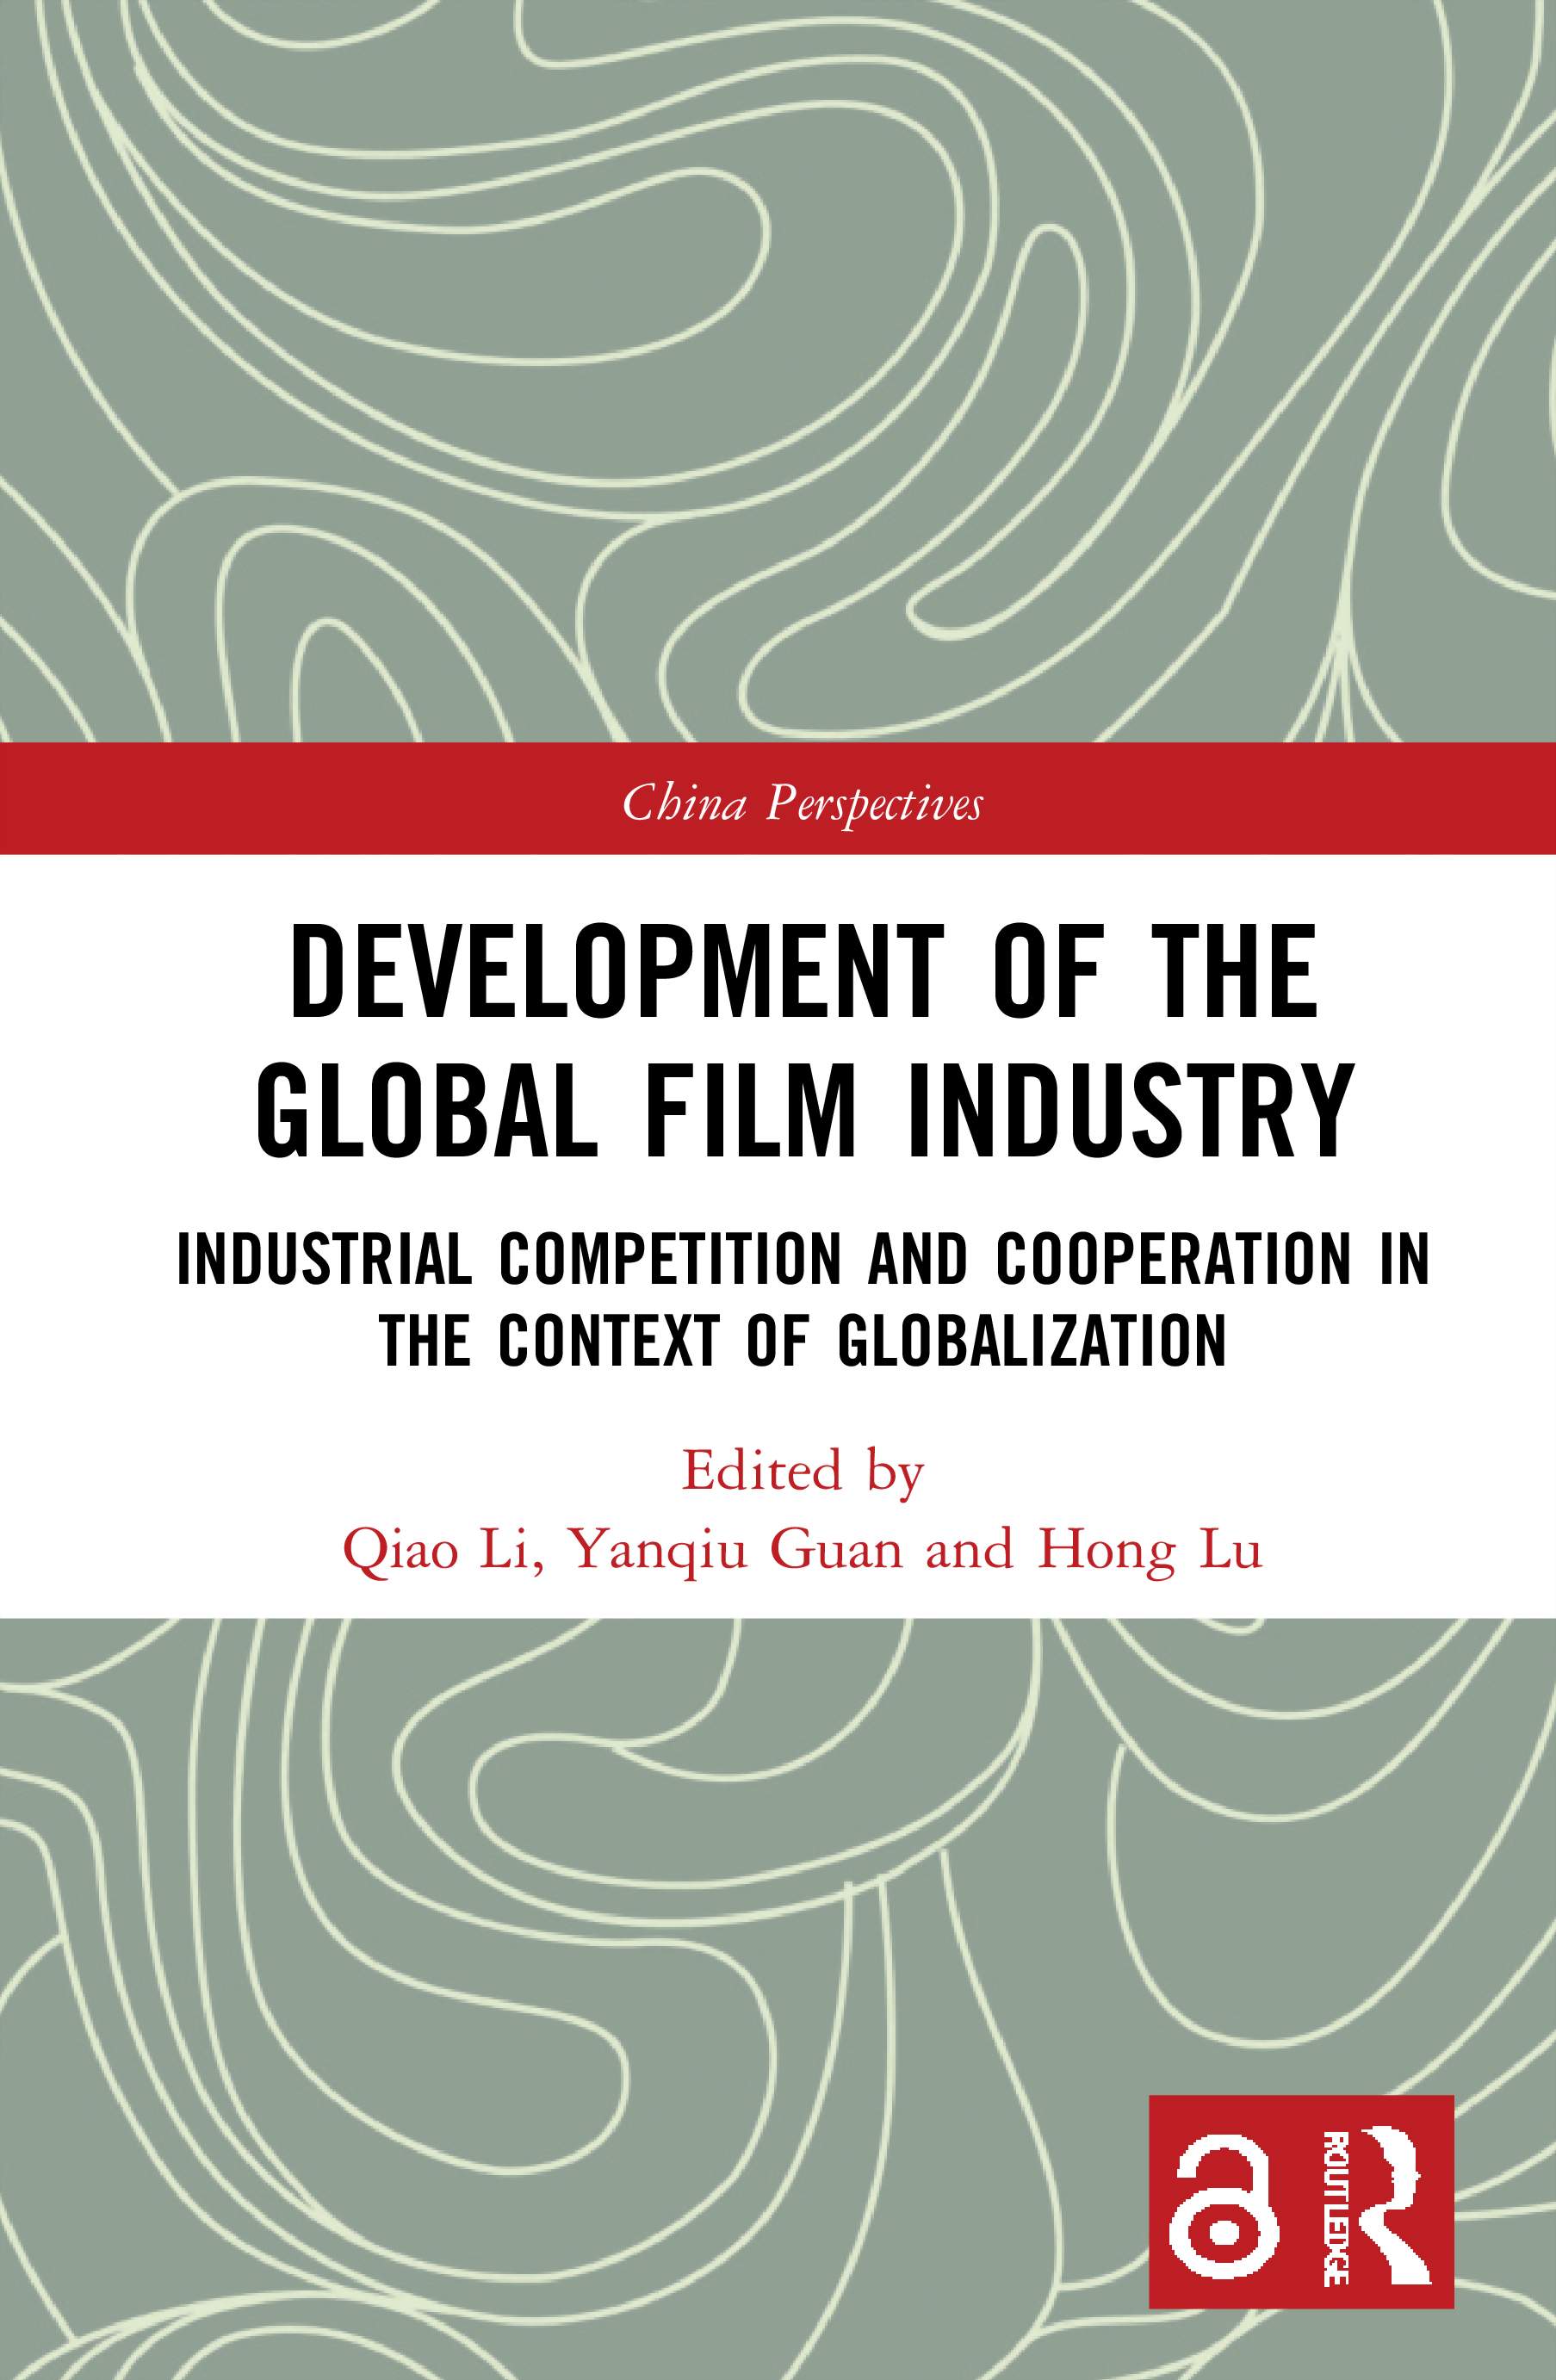 Development of the Global Film Industry (Open Access): Industrial Competition and Cooperation in the Context of Globalization book cover